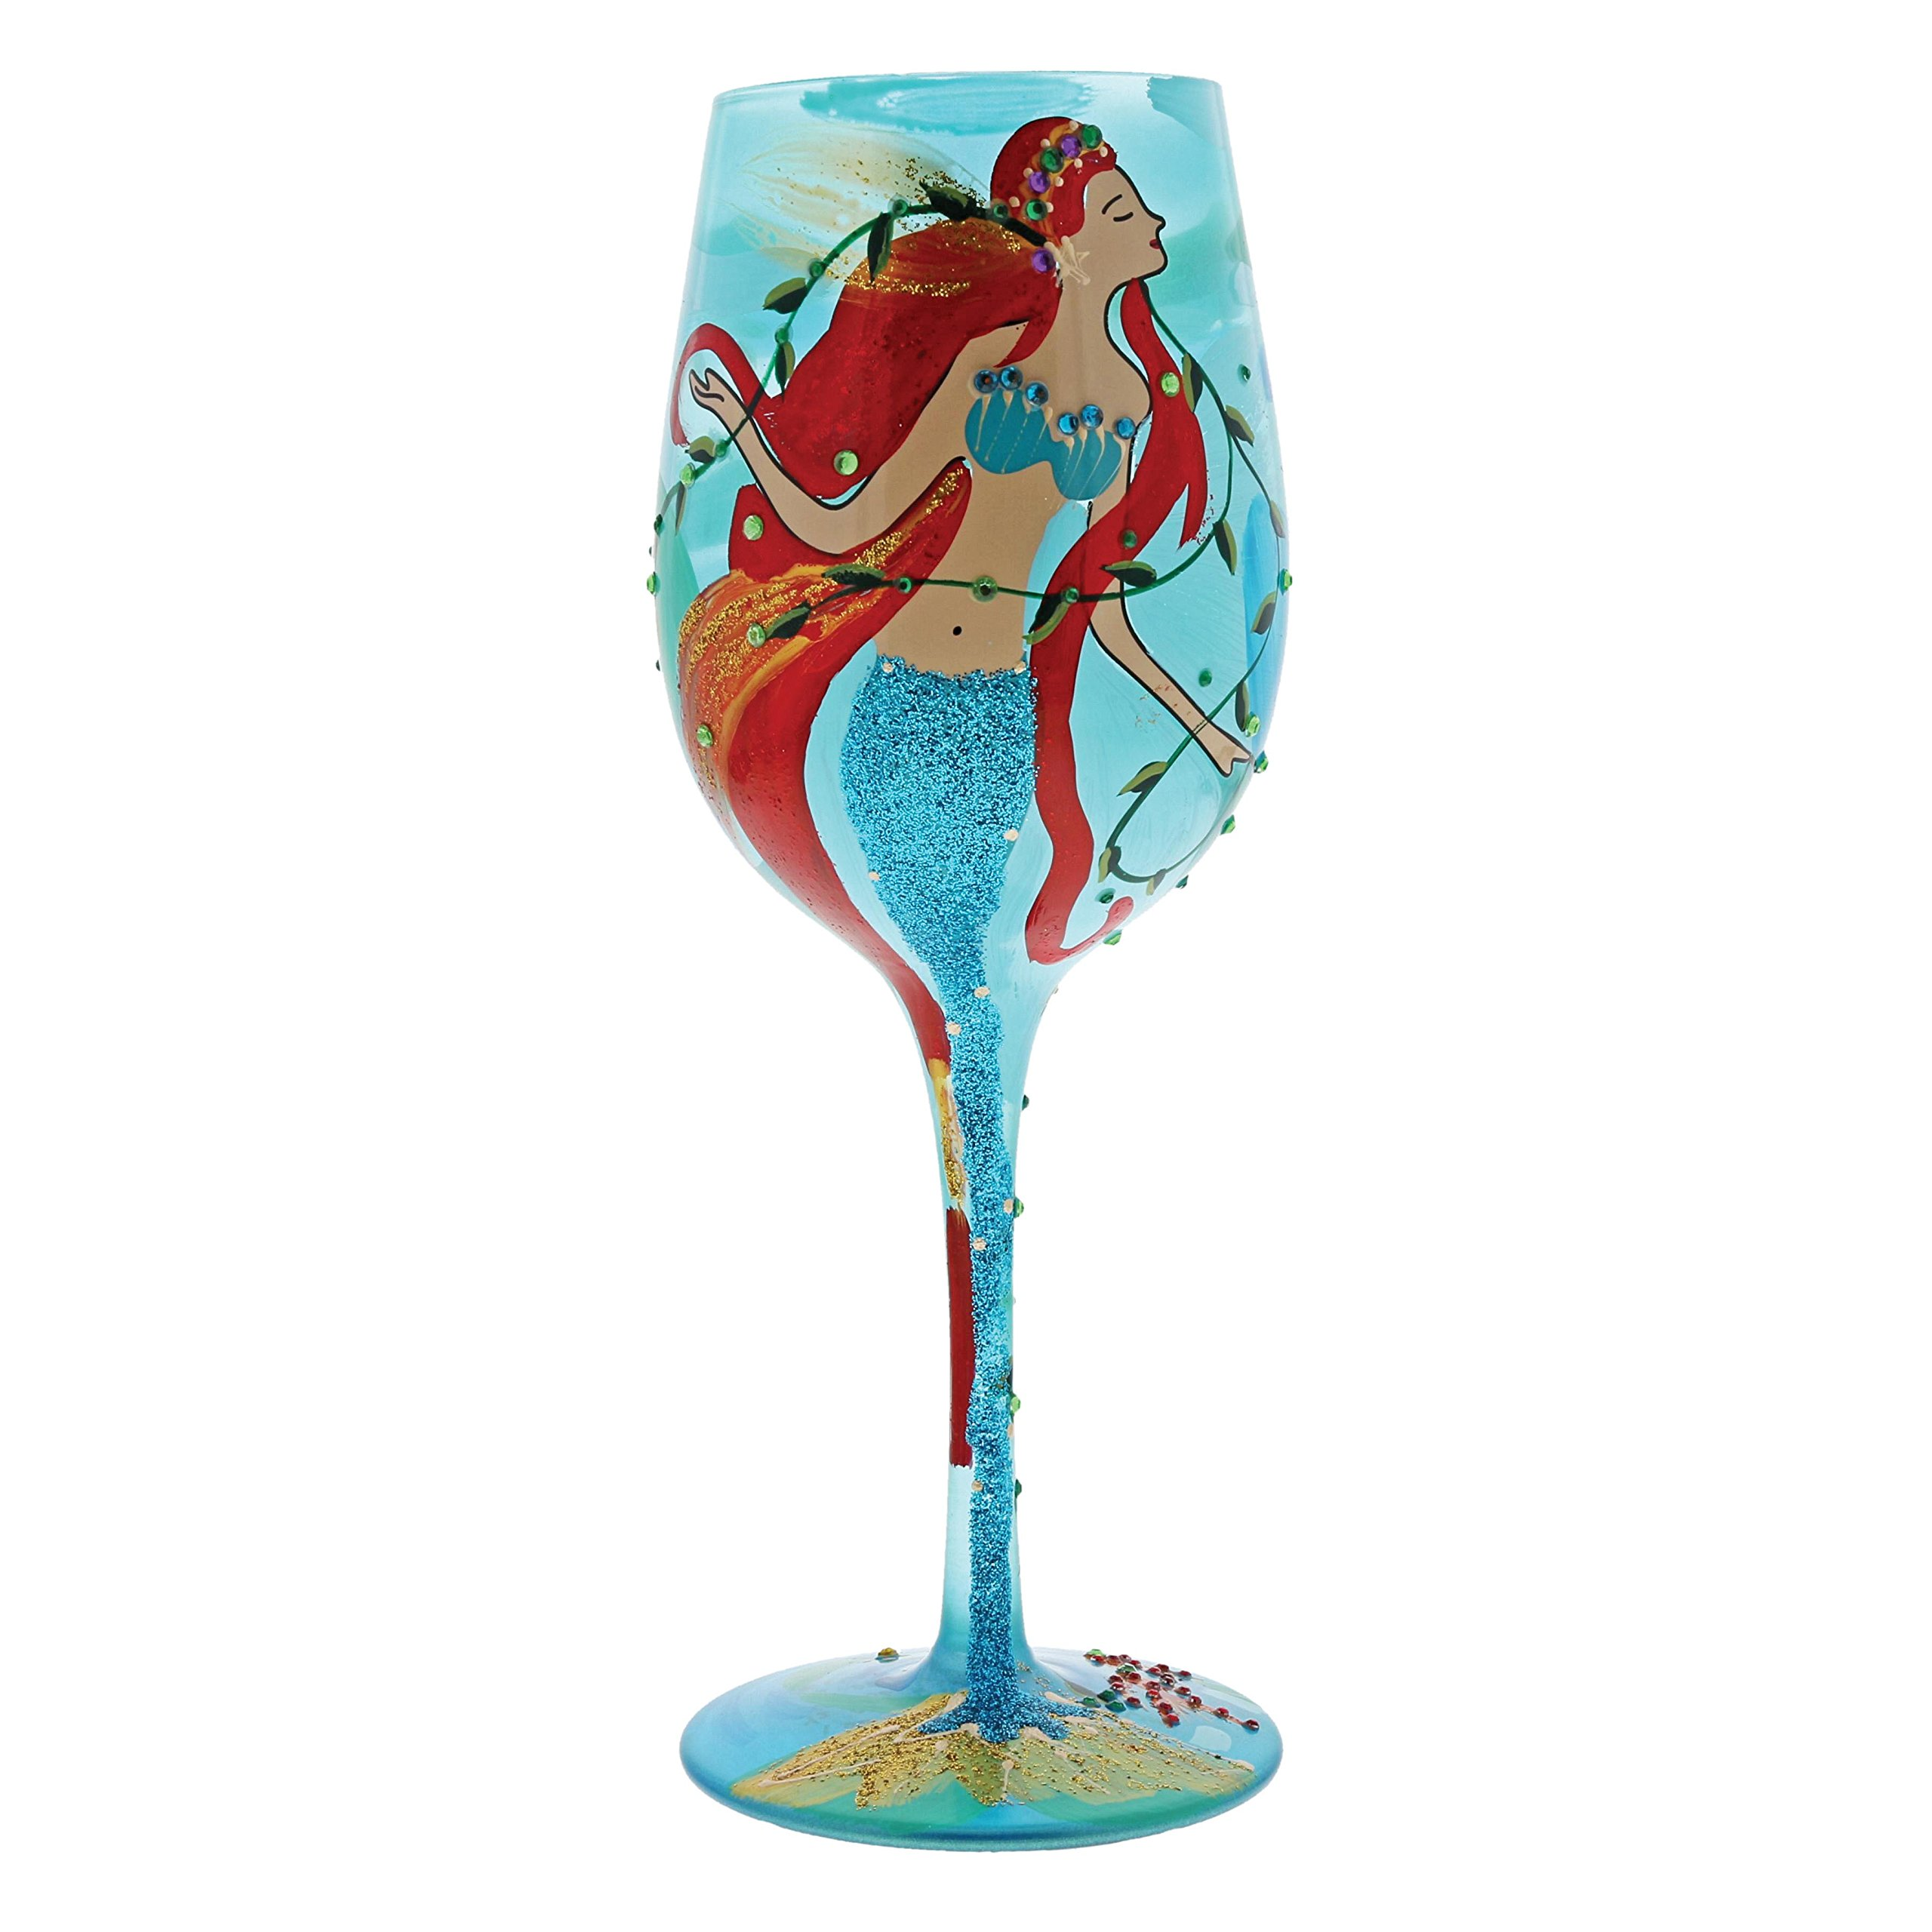 "Designs by Lolita ""Mermaid"" Hand-painted Artisan Wine Glass, 15 oz."